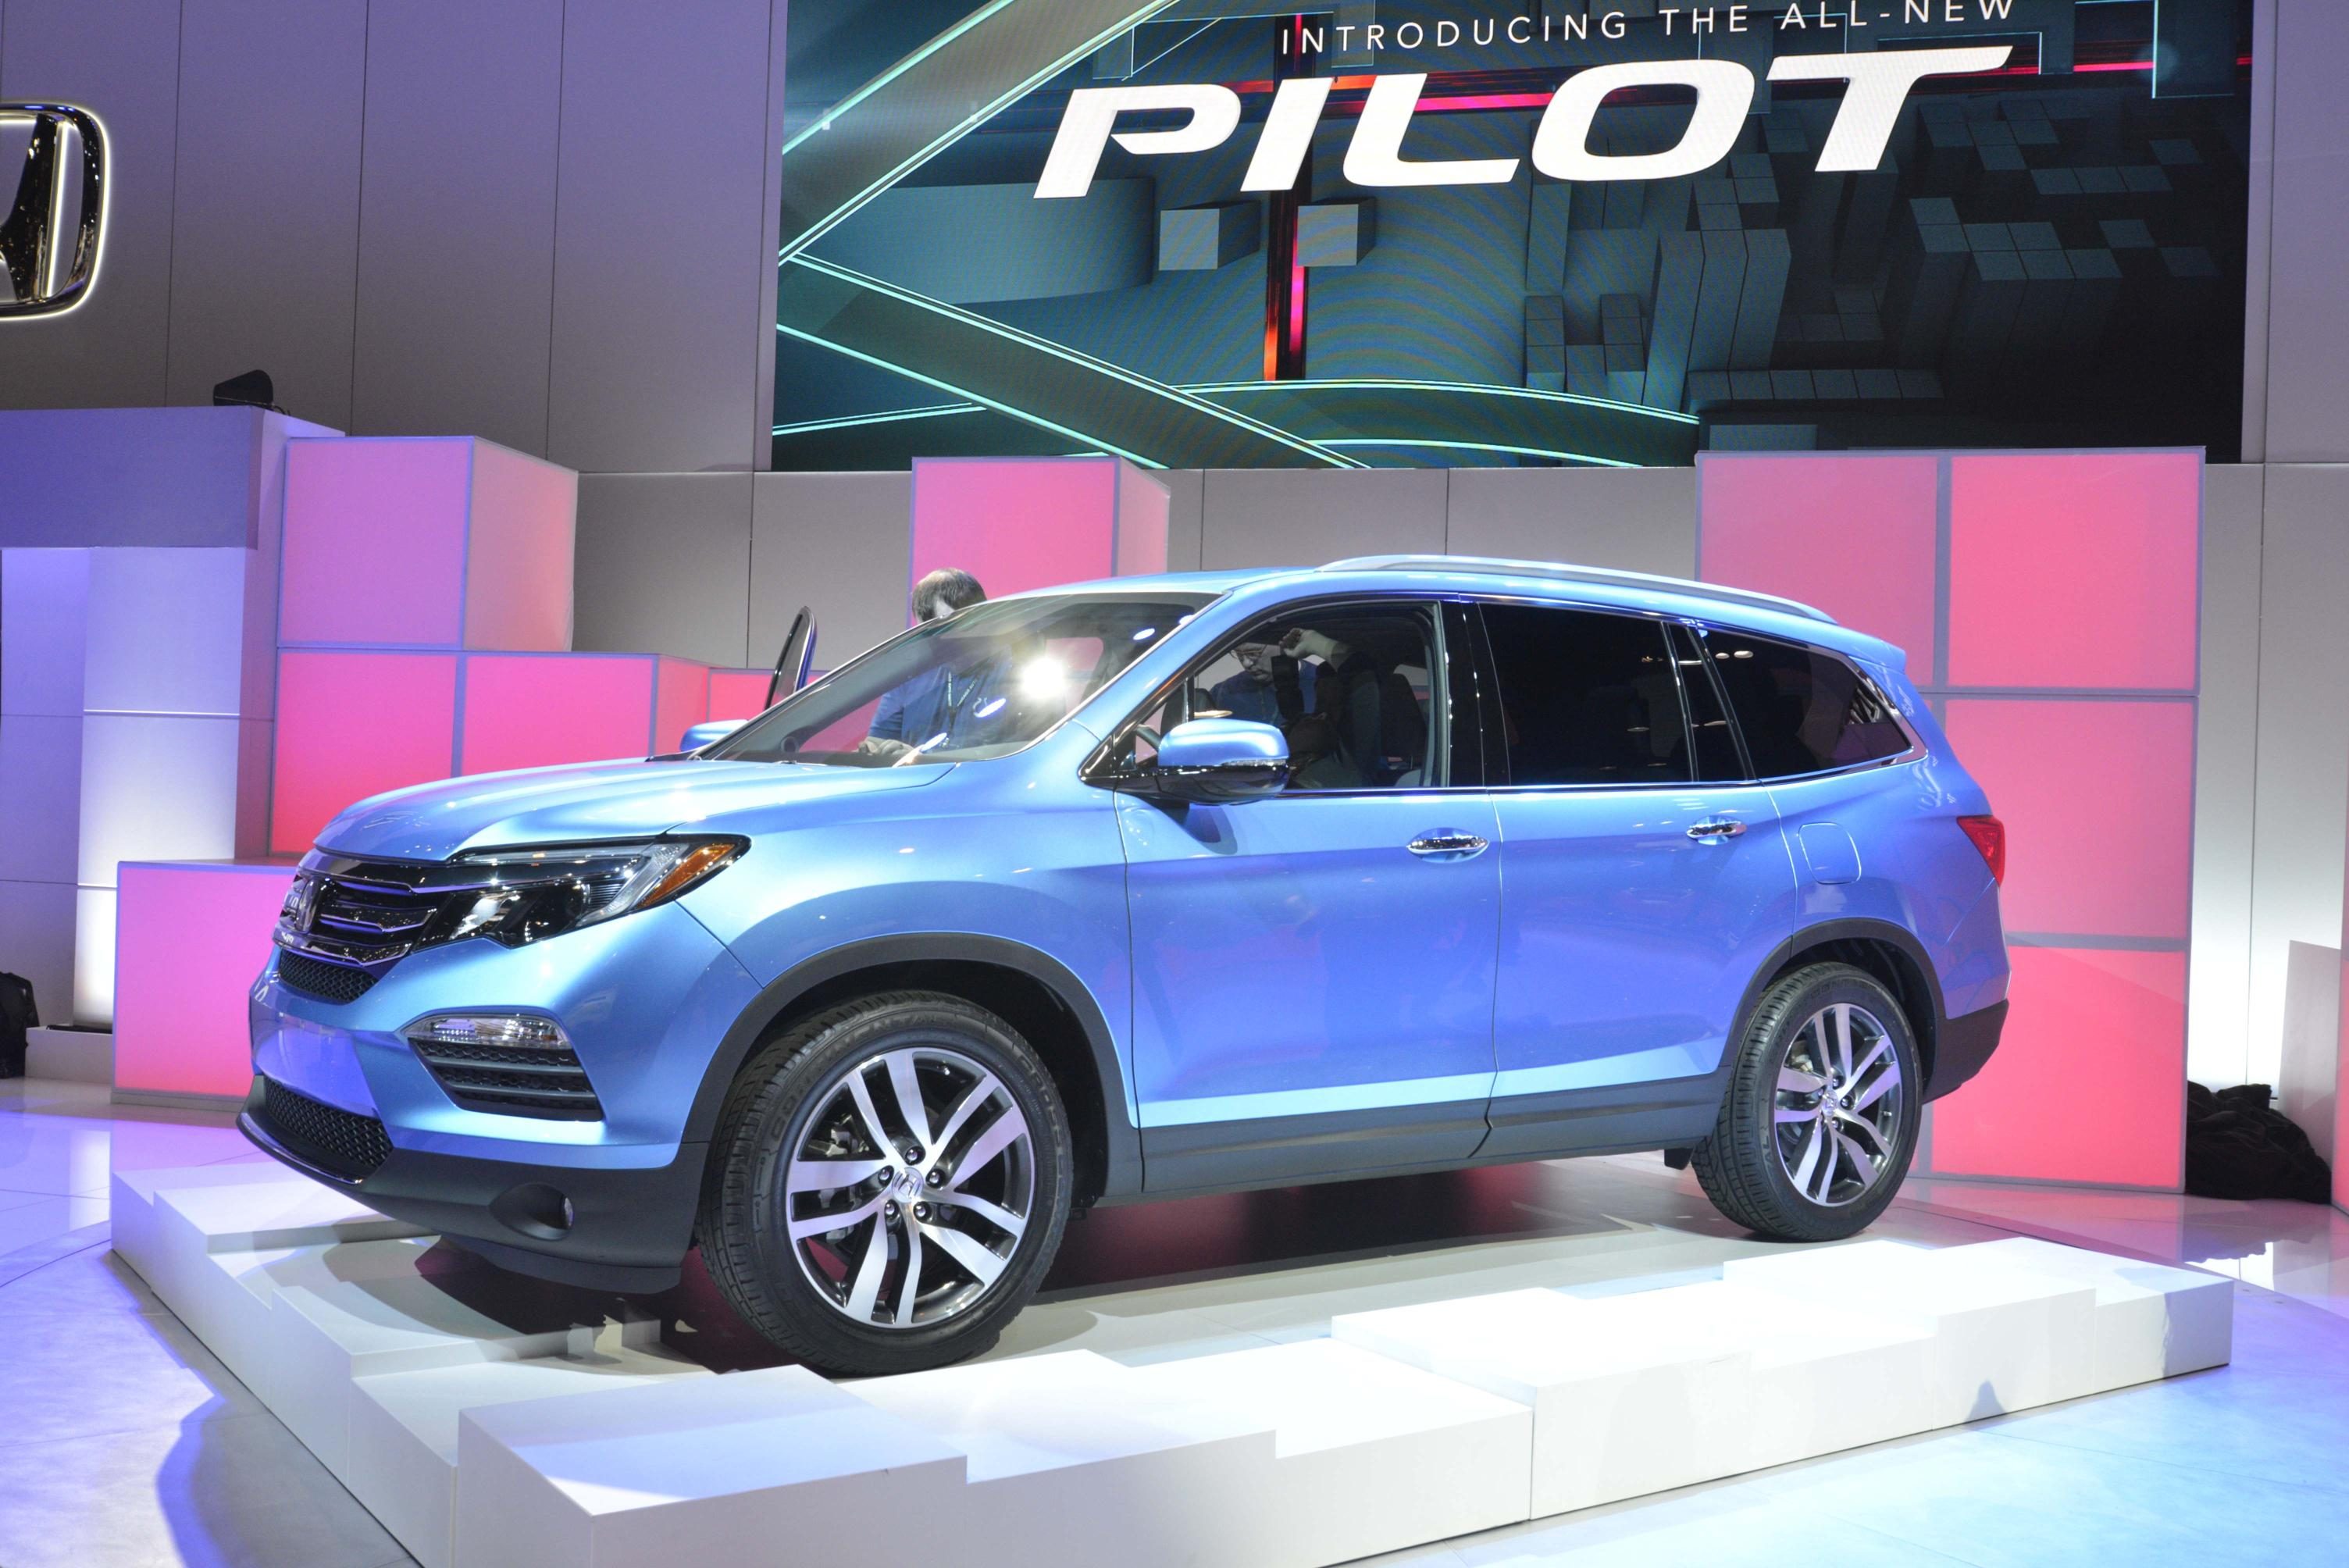 The 2016 Honda Pilot is available soon at Ocean Honda near Salinas & Gilroy CA